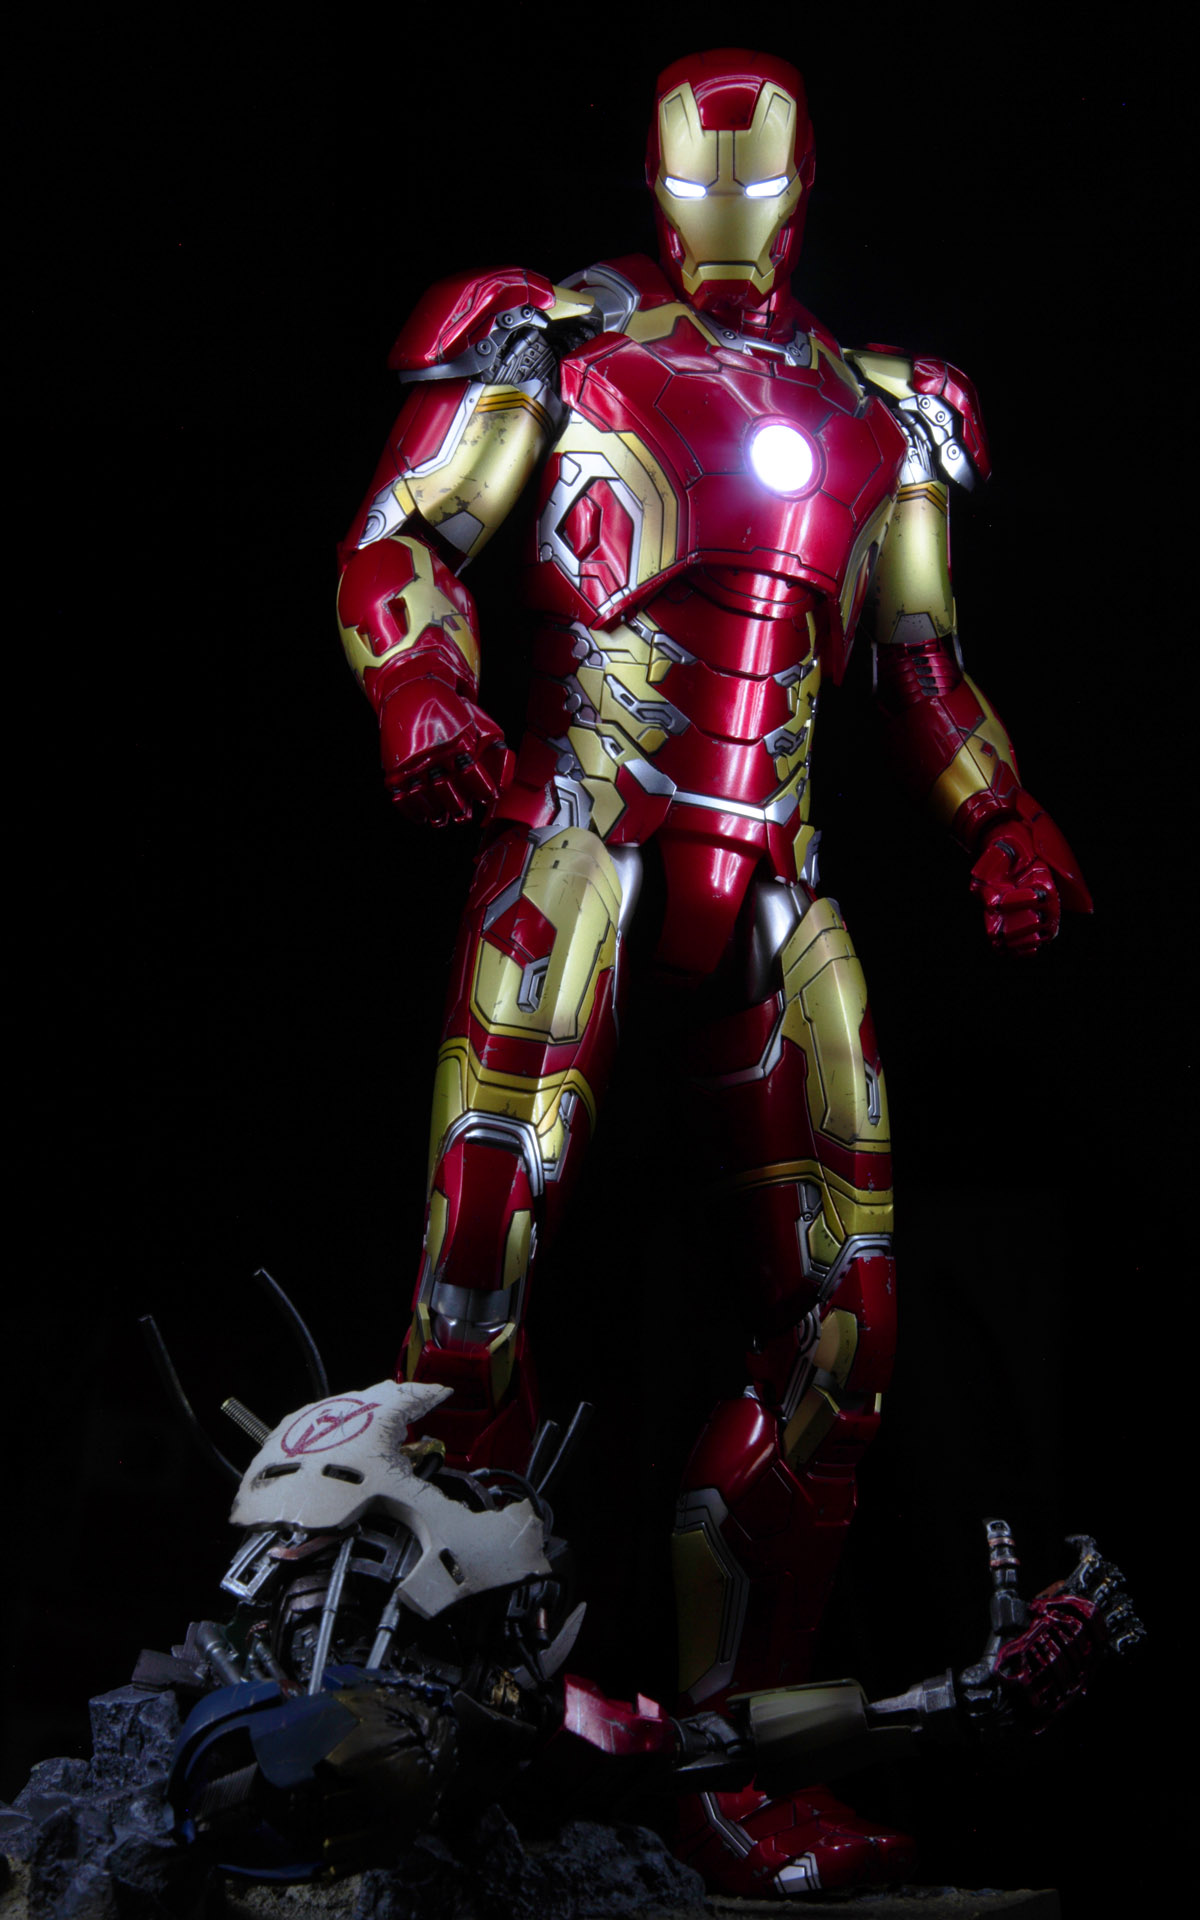 hottoys-avengers-age-of-ultron-iron-man-mark-43-picture01